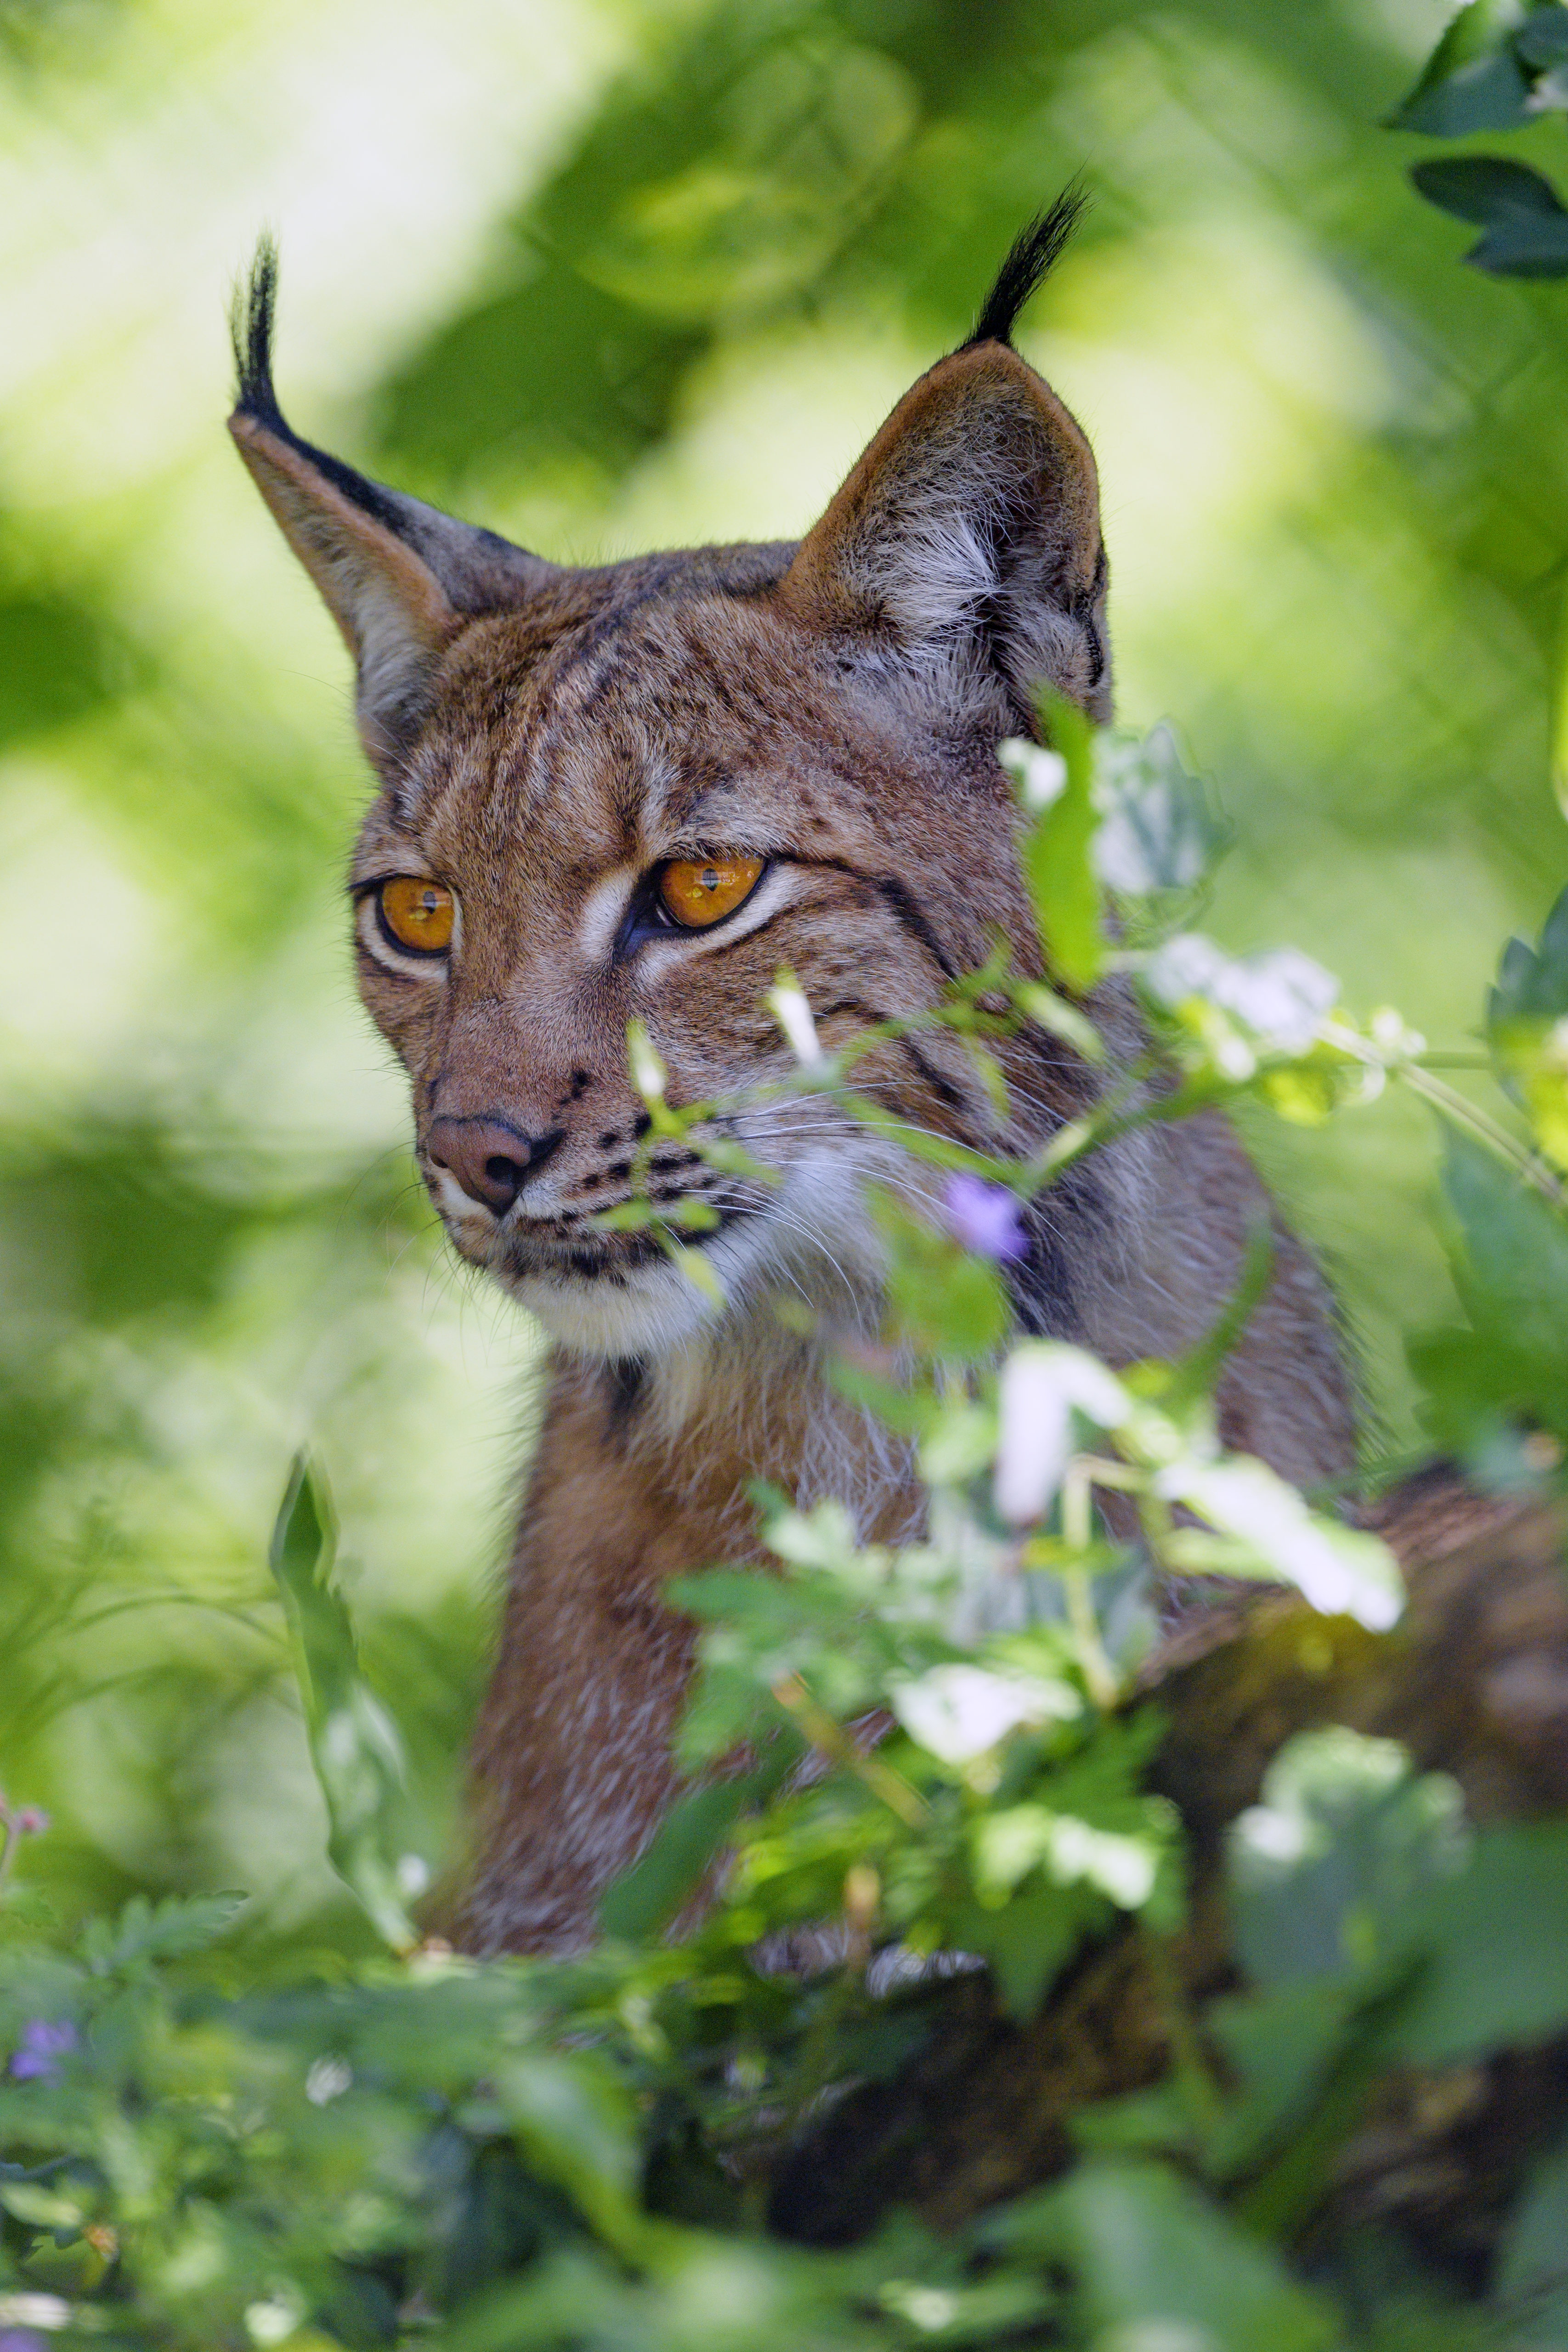 138880 download wallpaper Animals, Iris, Big Cat, Sight, Opinion, Animal screensavers and pictures for free